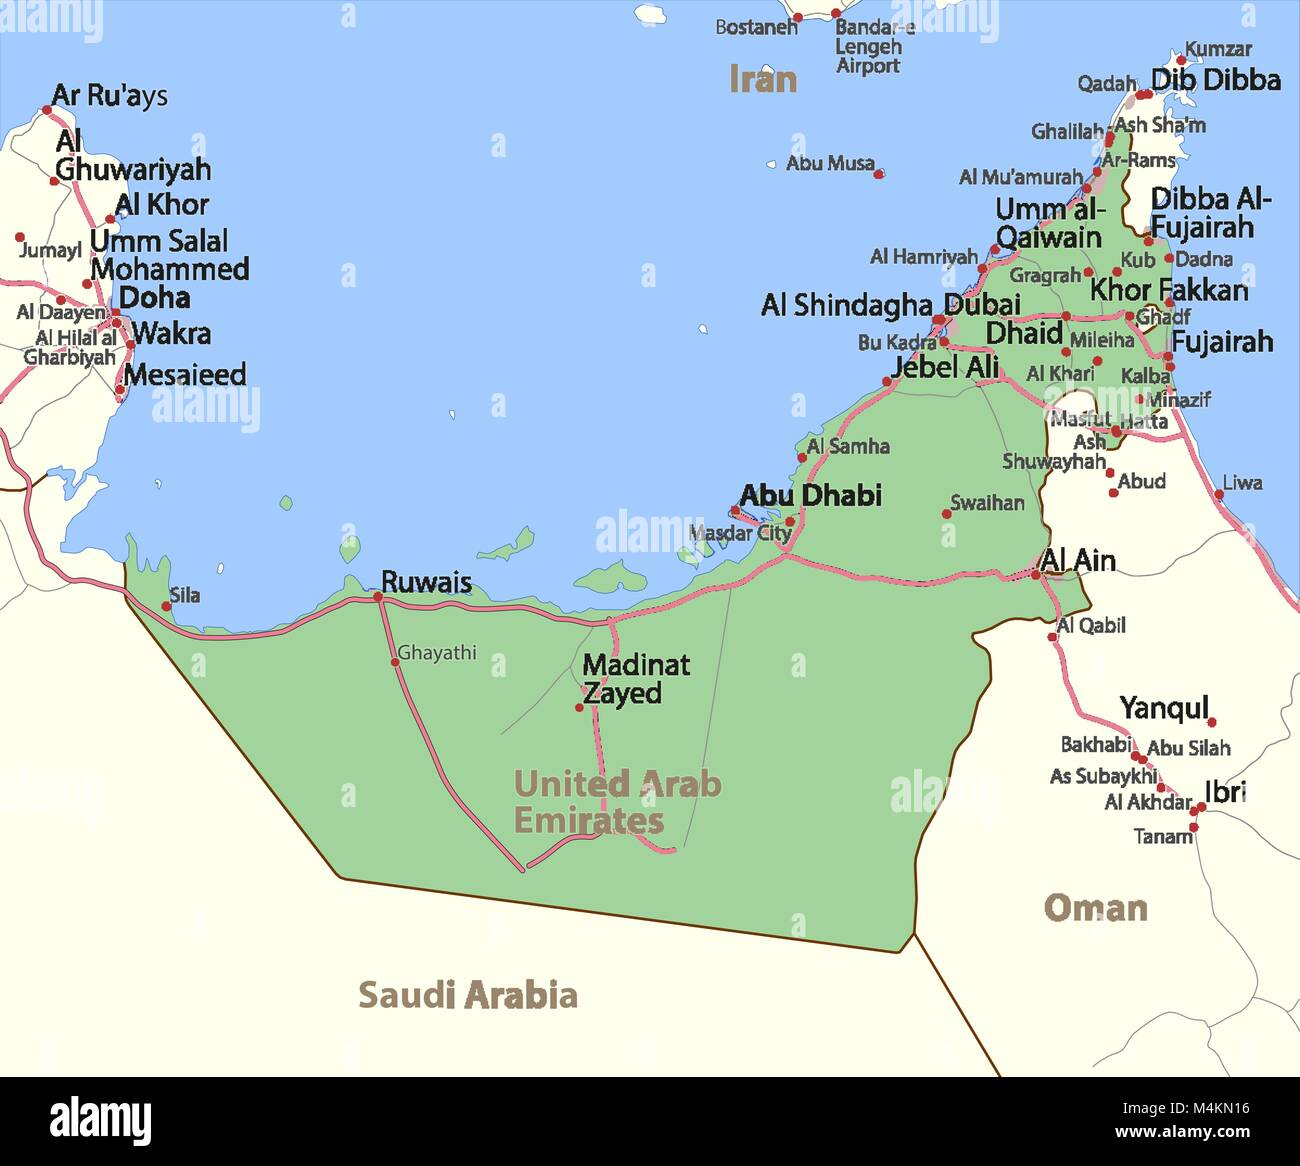 map of united arab emirates shows country borders urban areas place names and roads labels in english where possible projection mercator